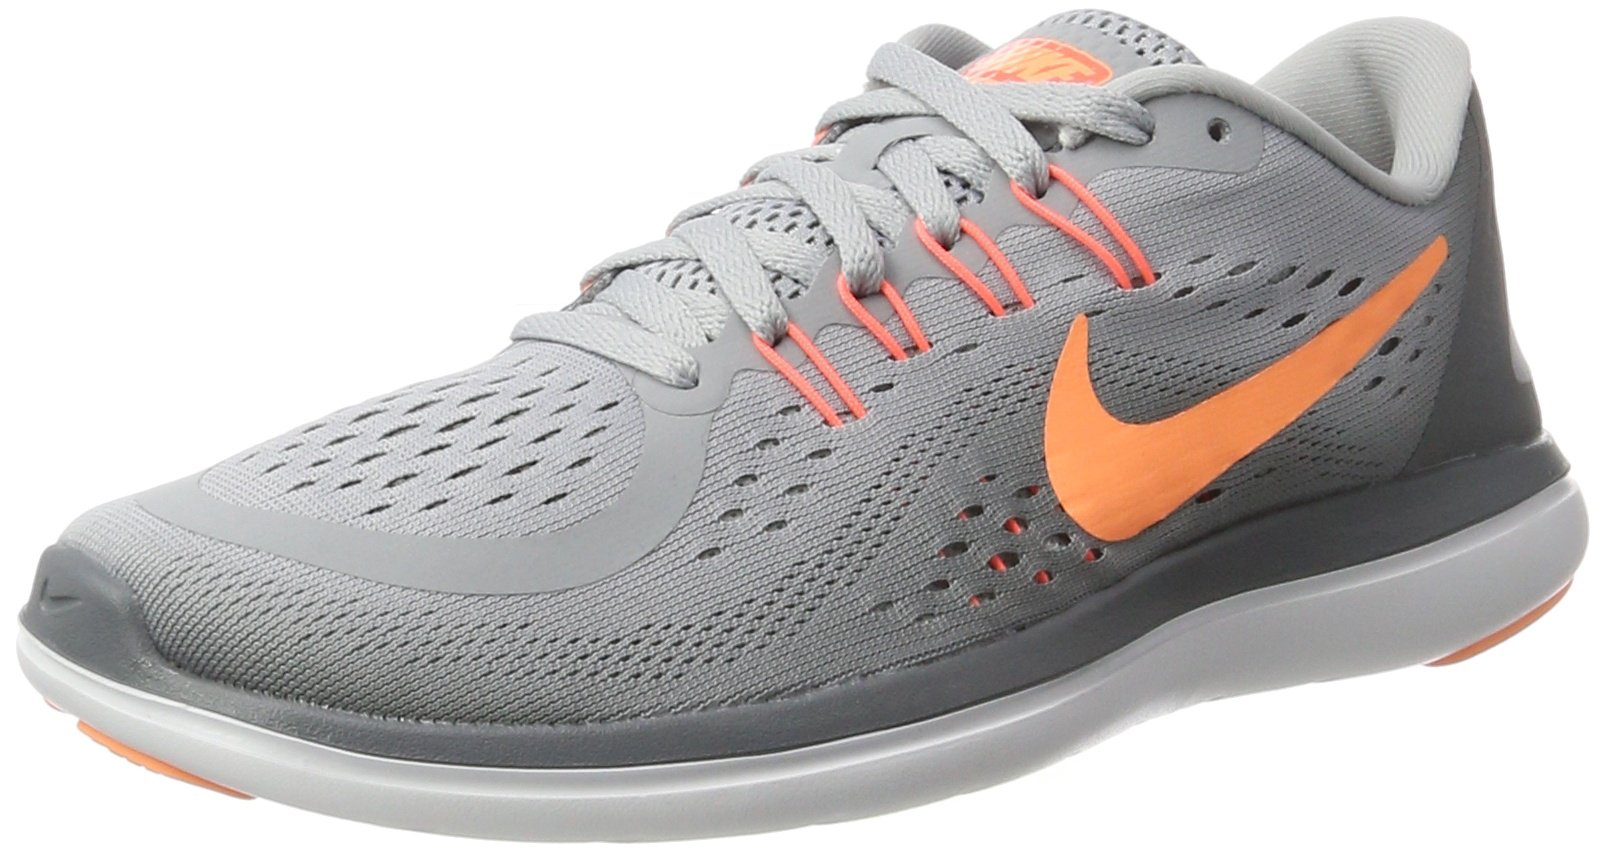 NIKE Women's Flex 2017 RN Running Shoe Wolf Grey/Sunset Glow/Cool Grey Size 11 M US